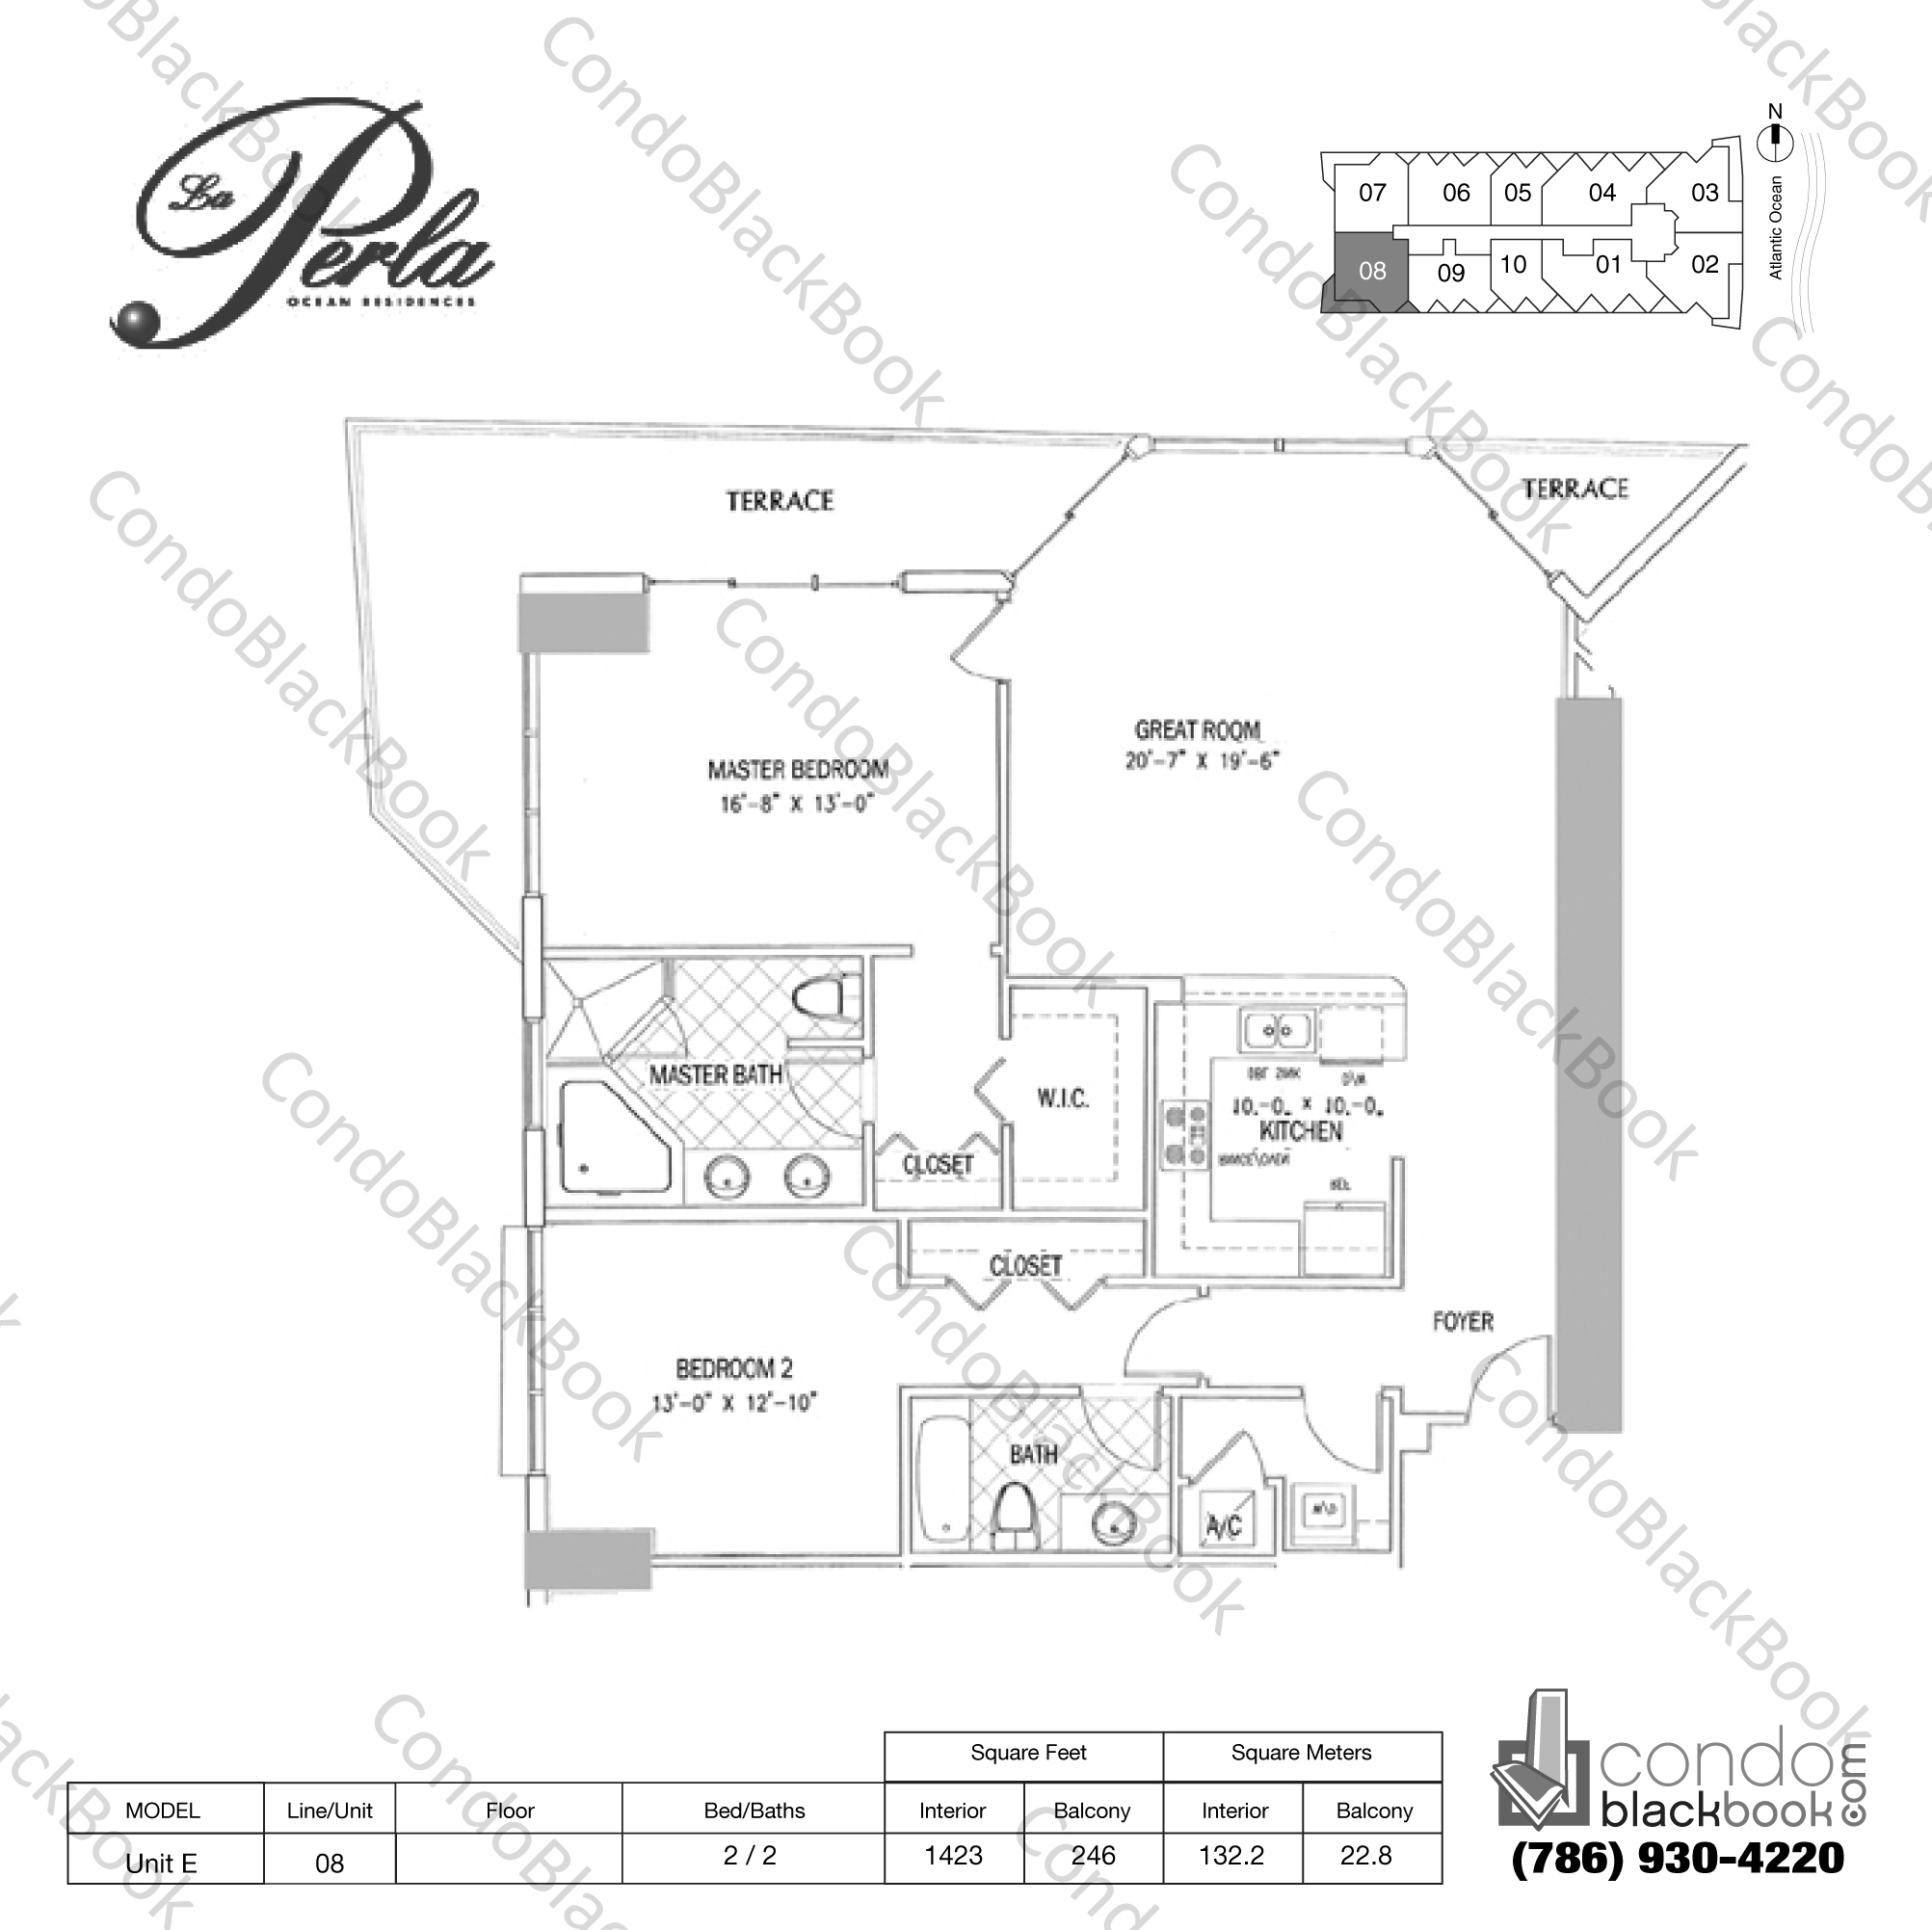 Floor plan for La Perla Sunny Isles Beach, model Unit E , line 08, 2 / 2  bedrooms, 1423 sq ft